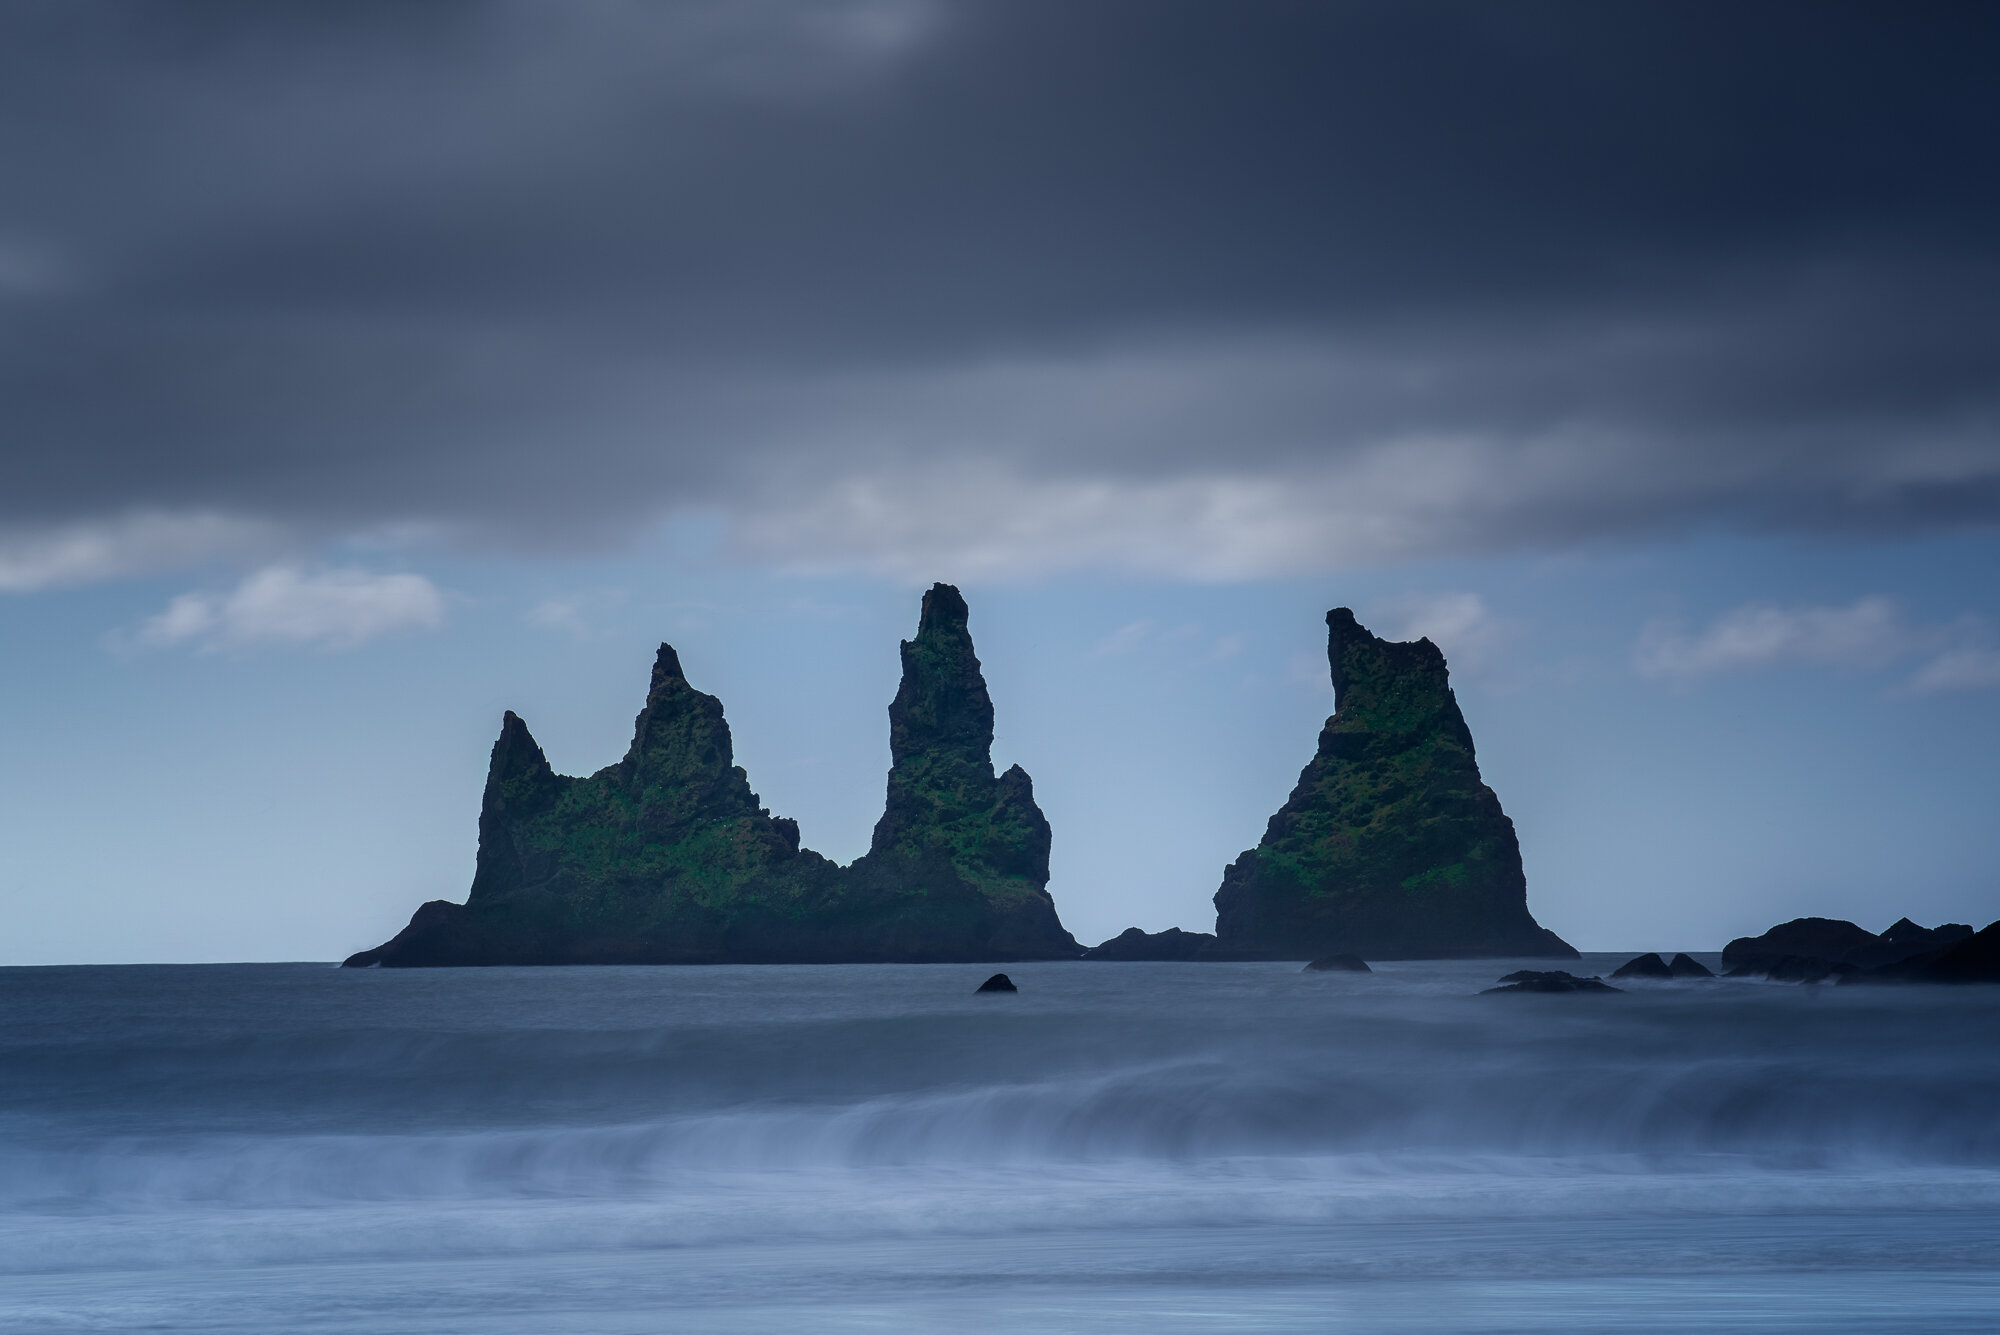 Iceland Long Exposure Landscape Photography: 'Vik Black Sand Beach'